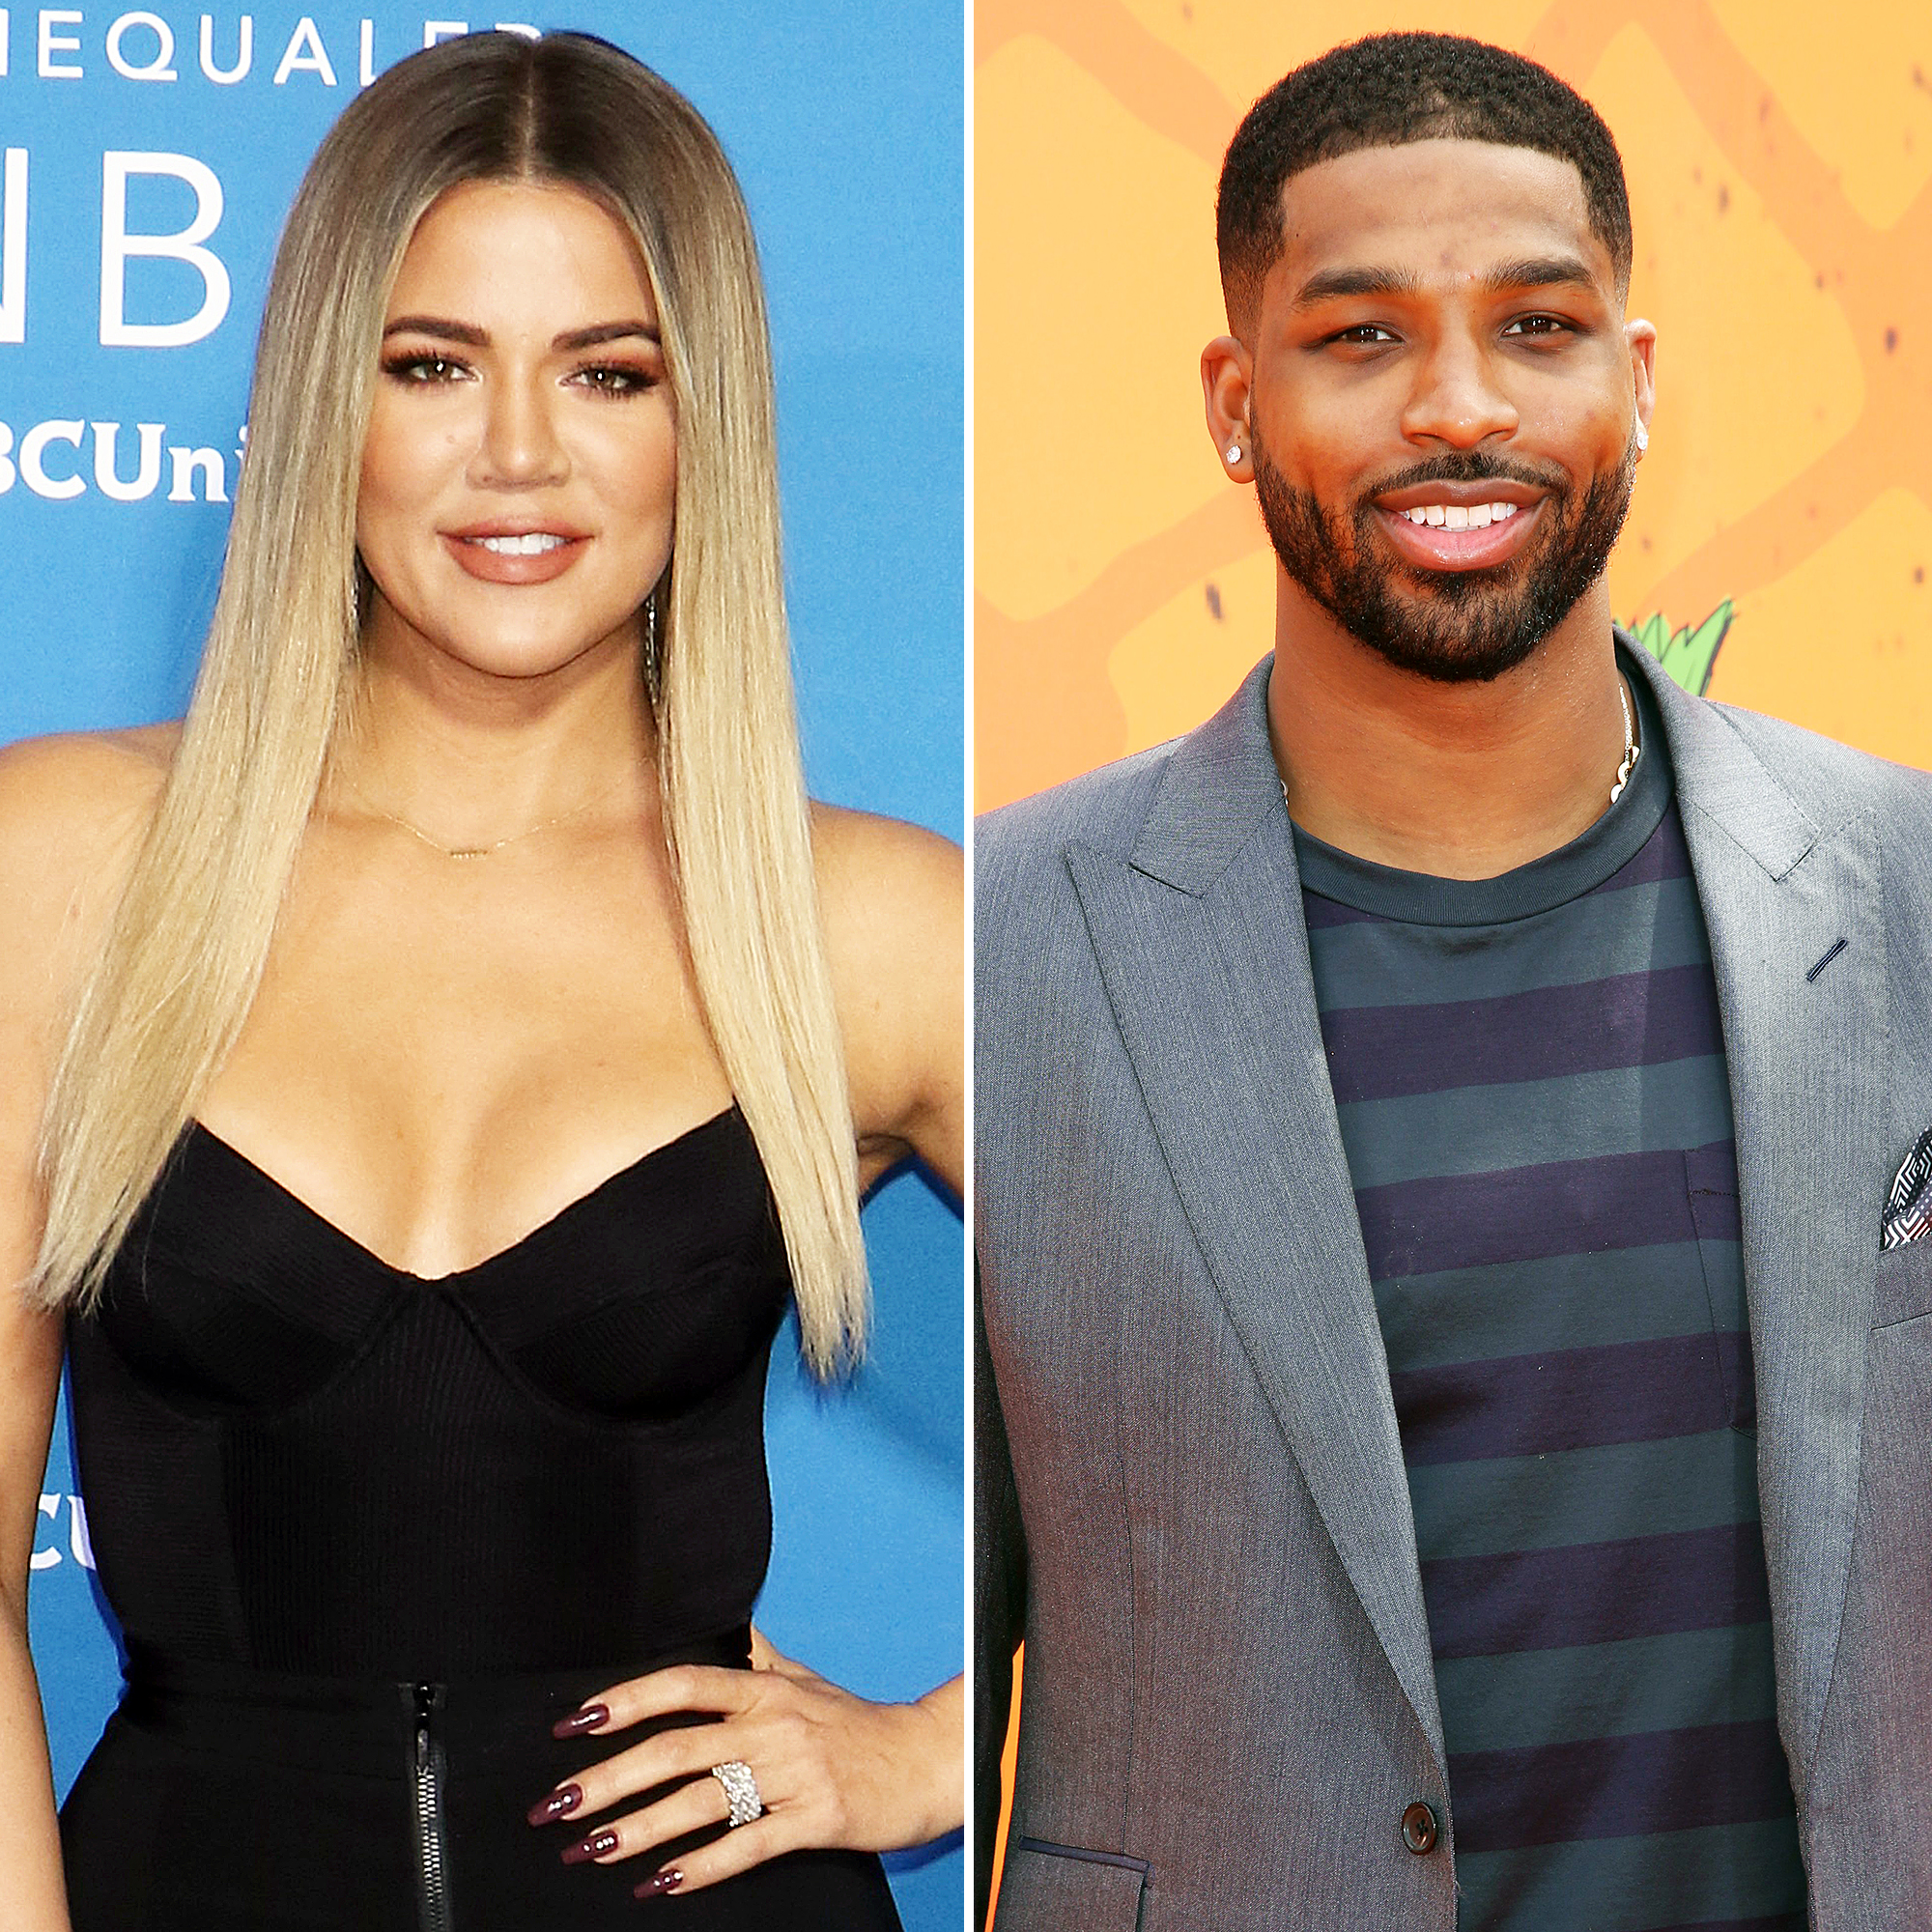 Khloe Kardashian Seemingly Responds to Engagement Rumors About Her and Tristan Thompson